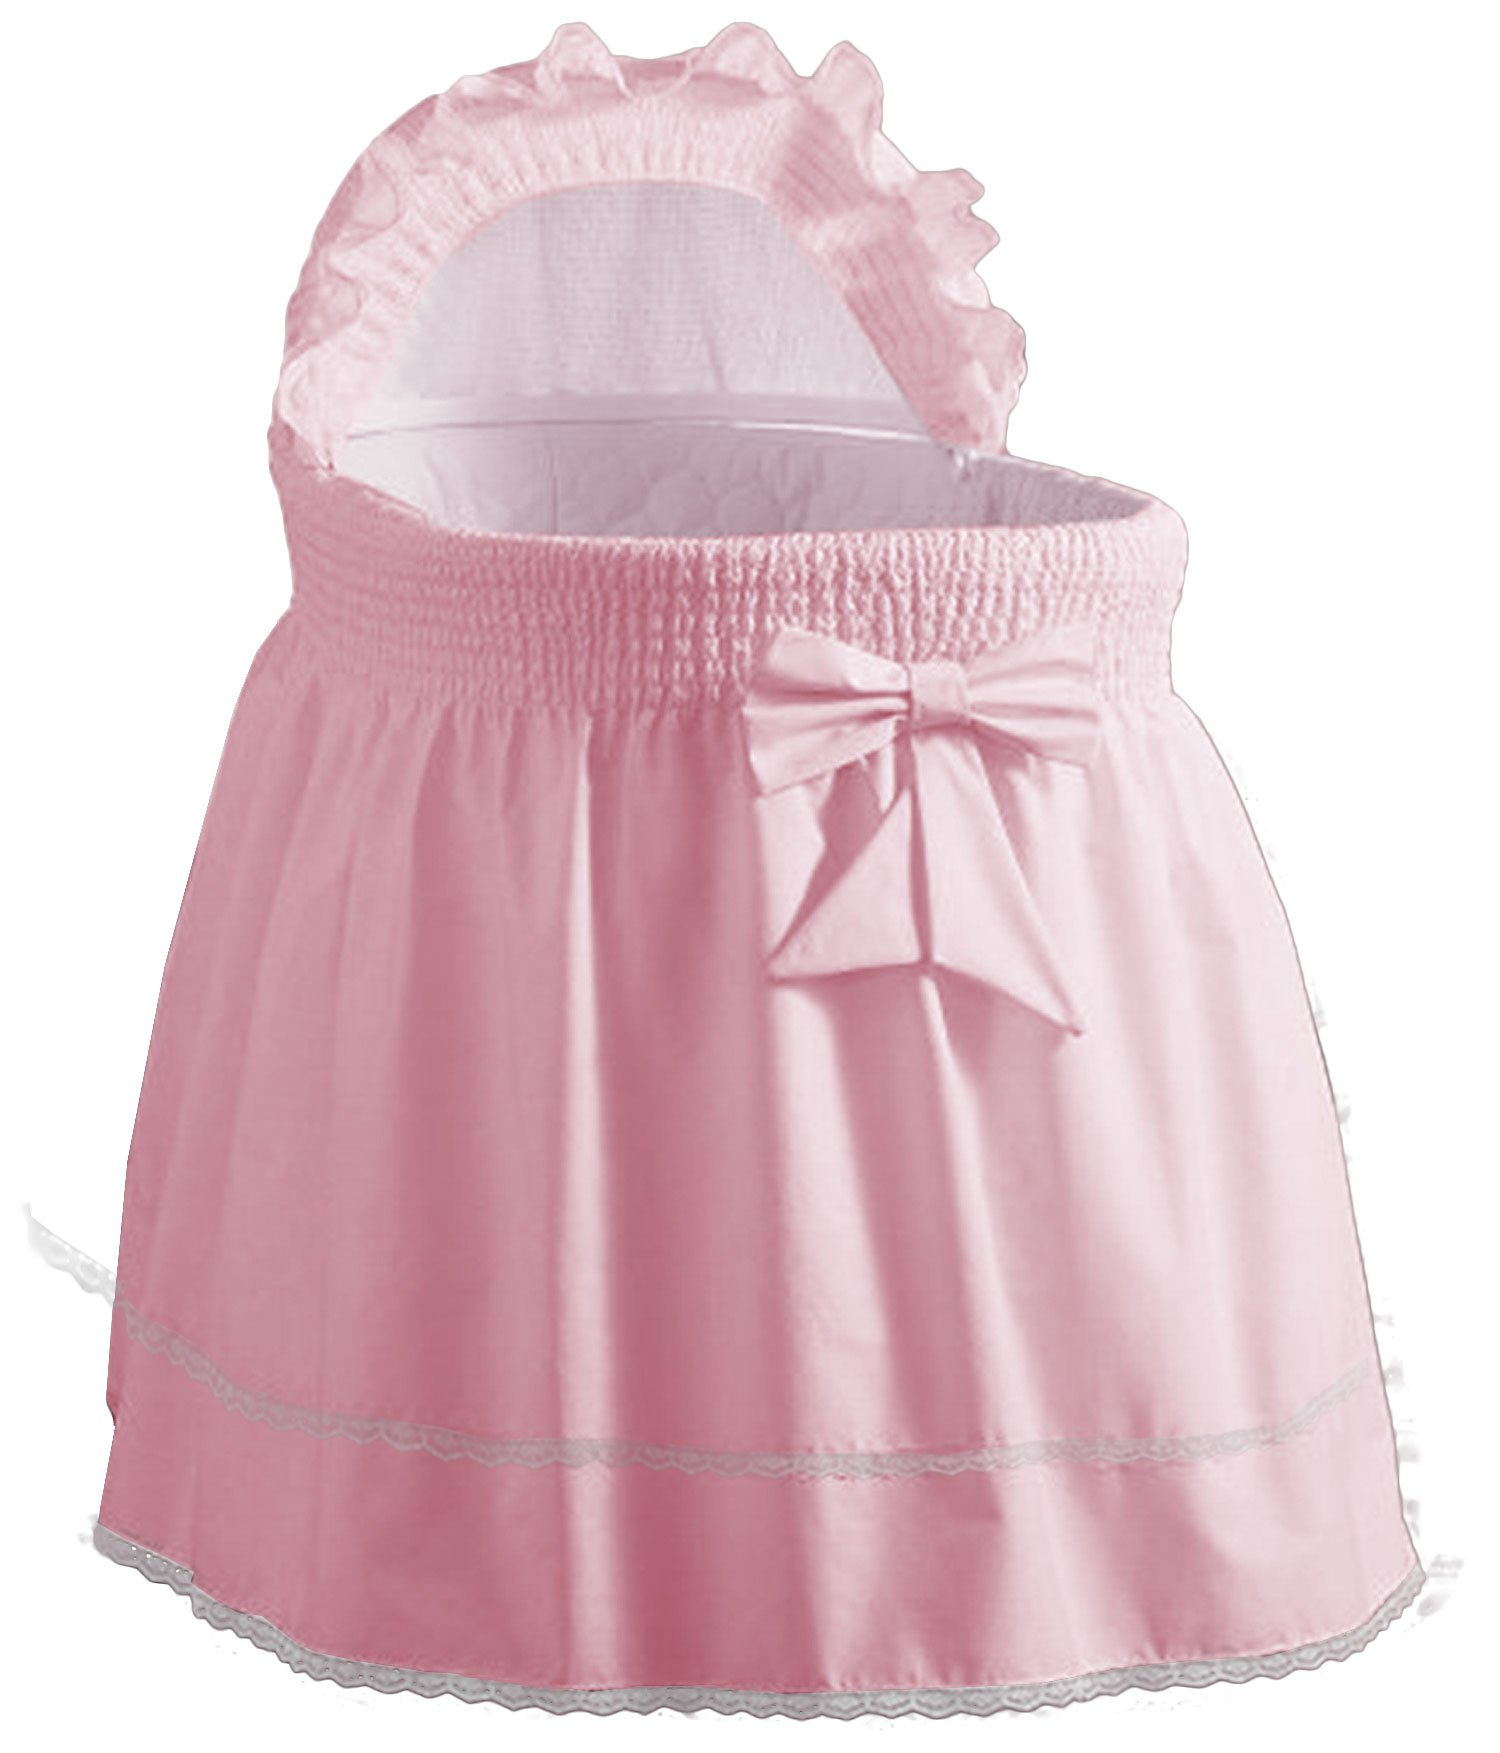 Baby Doll Bedding Classic Sea Shell Bassinet Bedding for Girl,Pink by BabyDoll Bedding